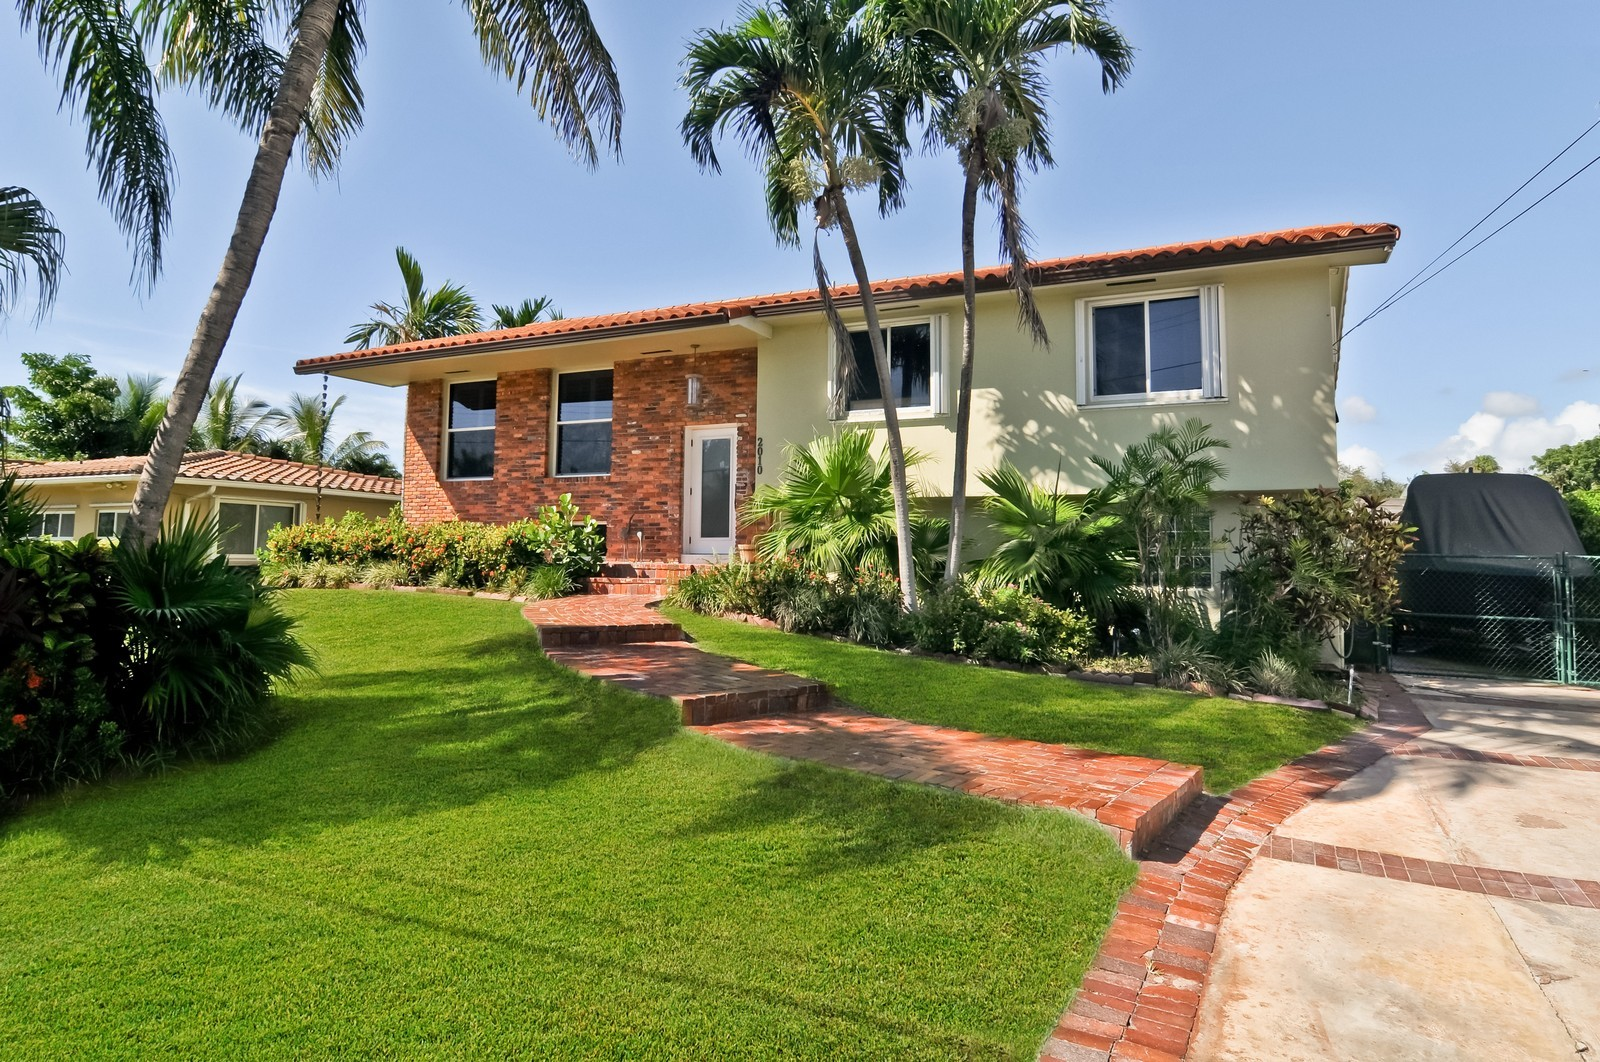 Real Estate Photography - 2010 NE 121st Rd, Miami, FL, 33181 - Front View